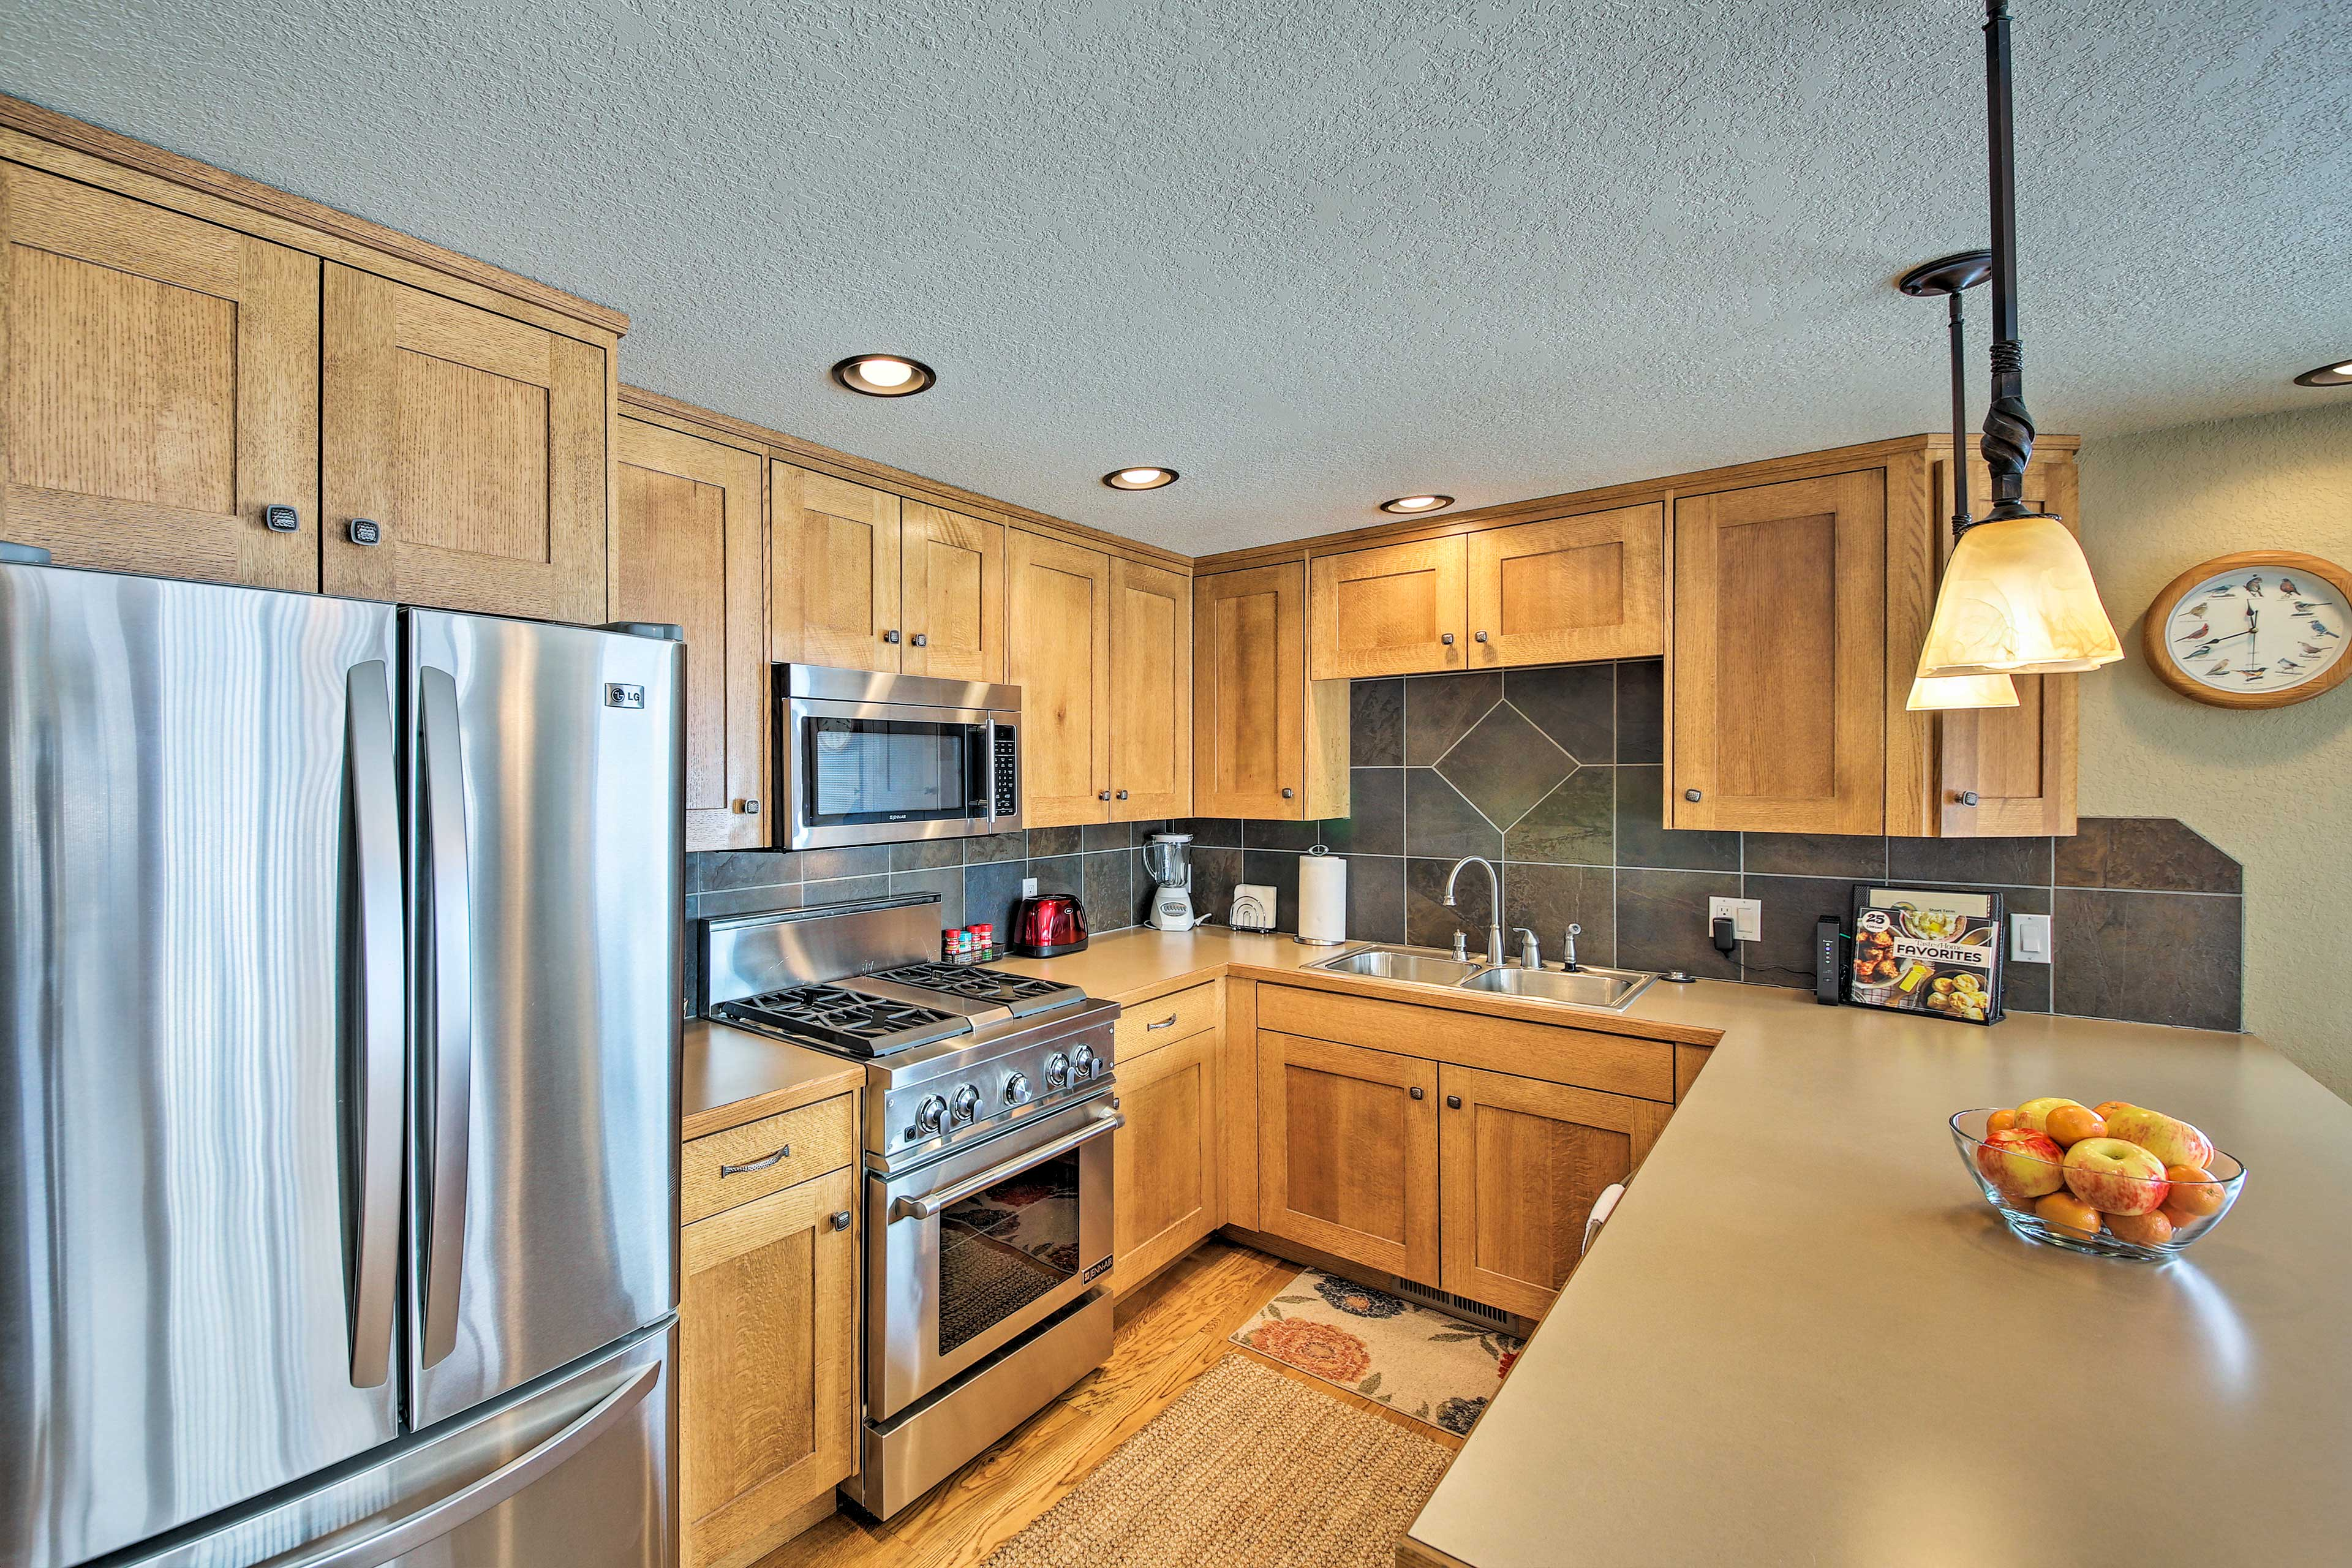 The kitchen is outfitted with stainless steel appliances.